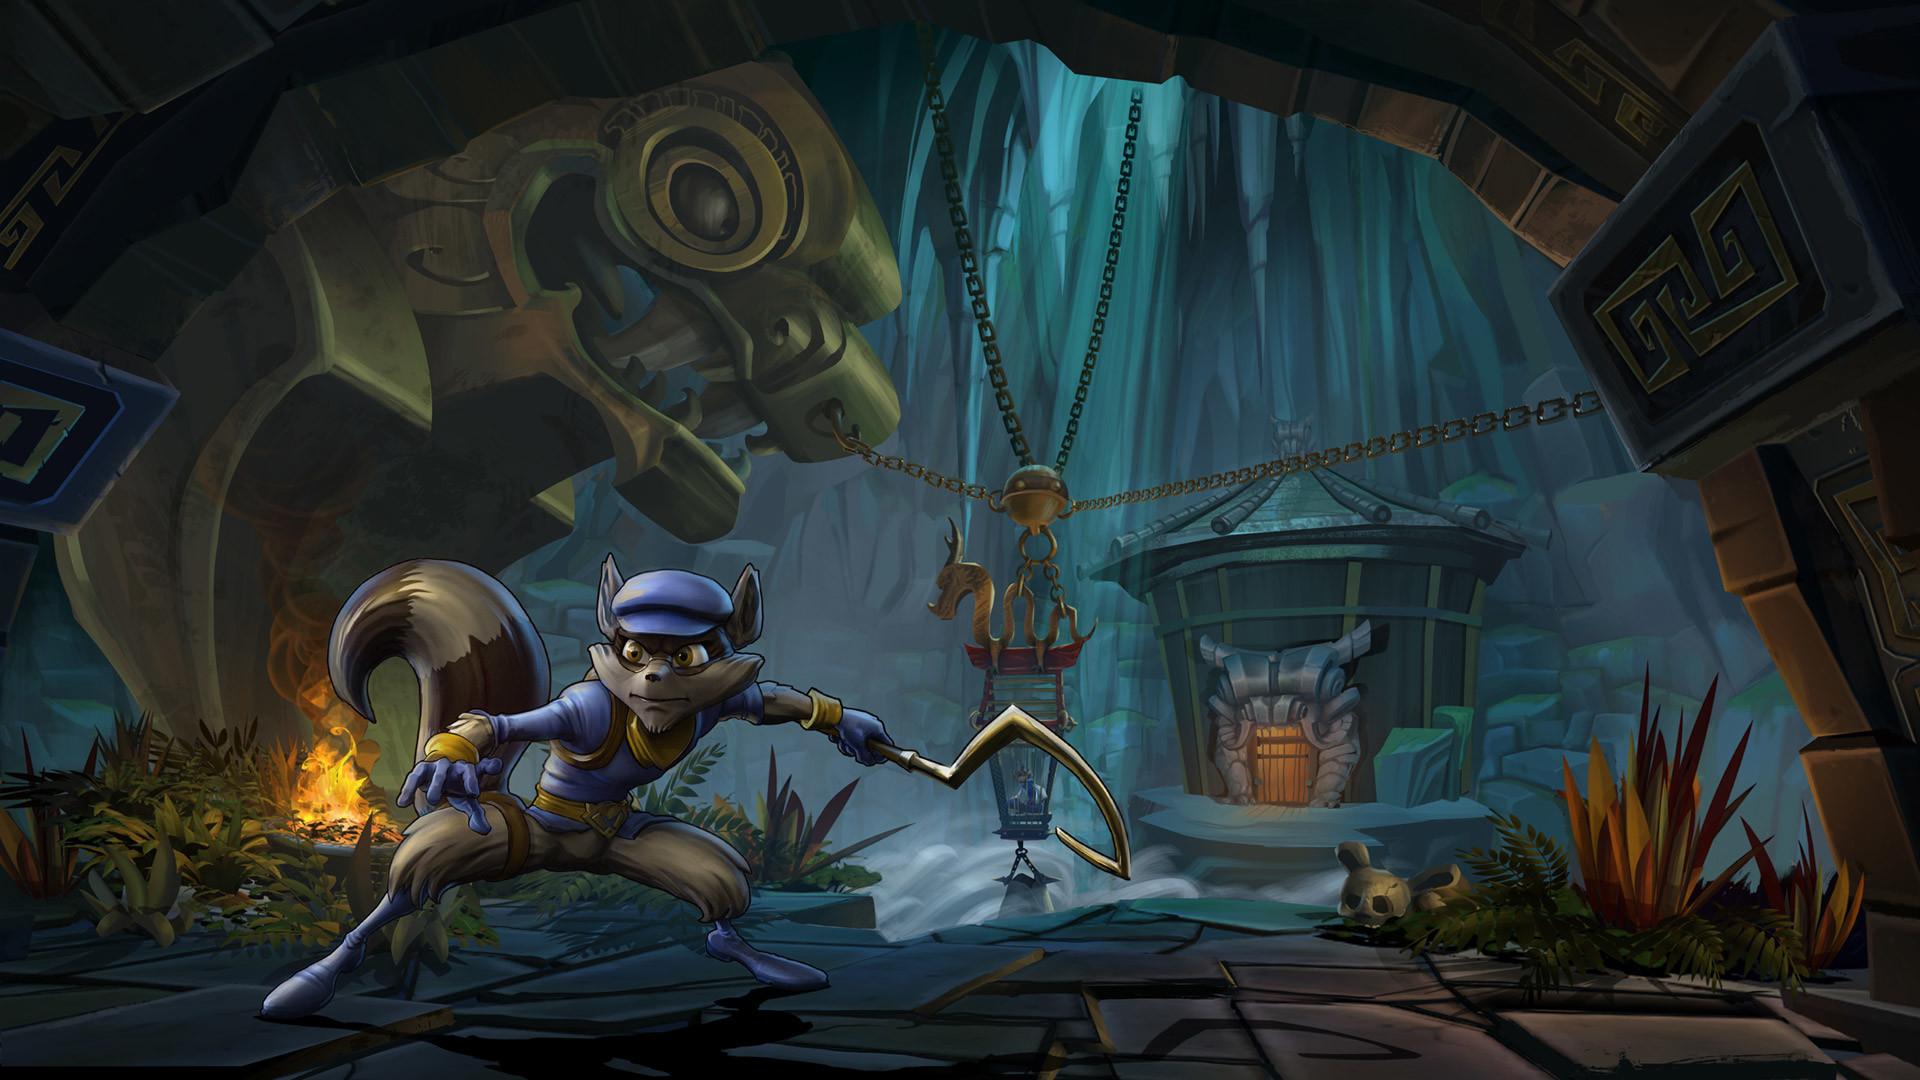 Free Sly Cooper: Thieves in Time Wallpaper in 1920×1080